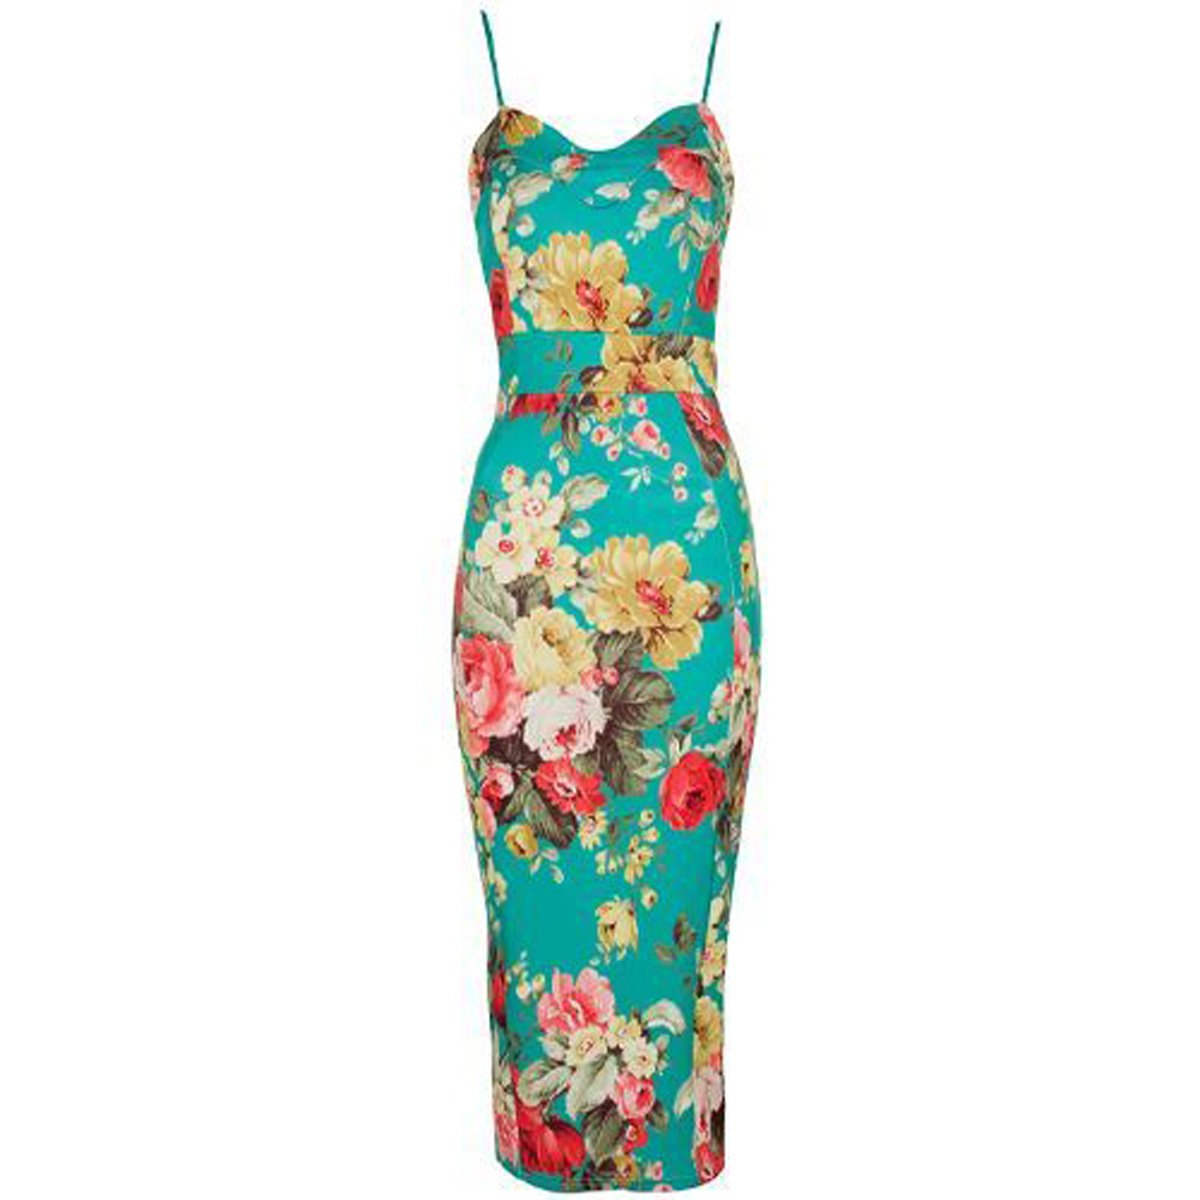 Amazon.com  FashionMark New Womens Celeb Floral Tropical Print Bodycon Midi  Dress  Clothing fe05c37c9